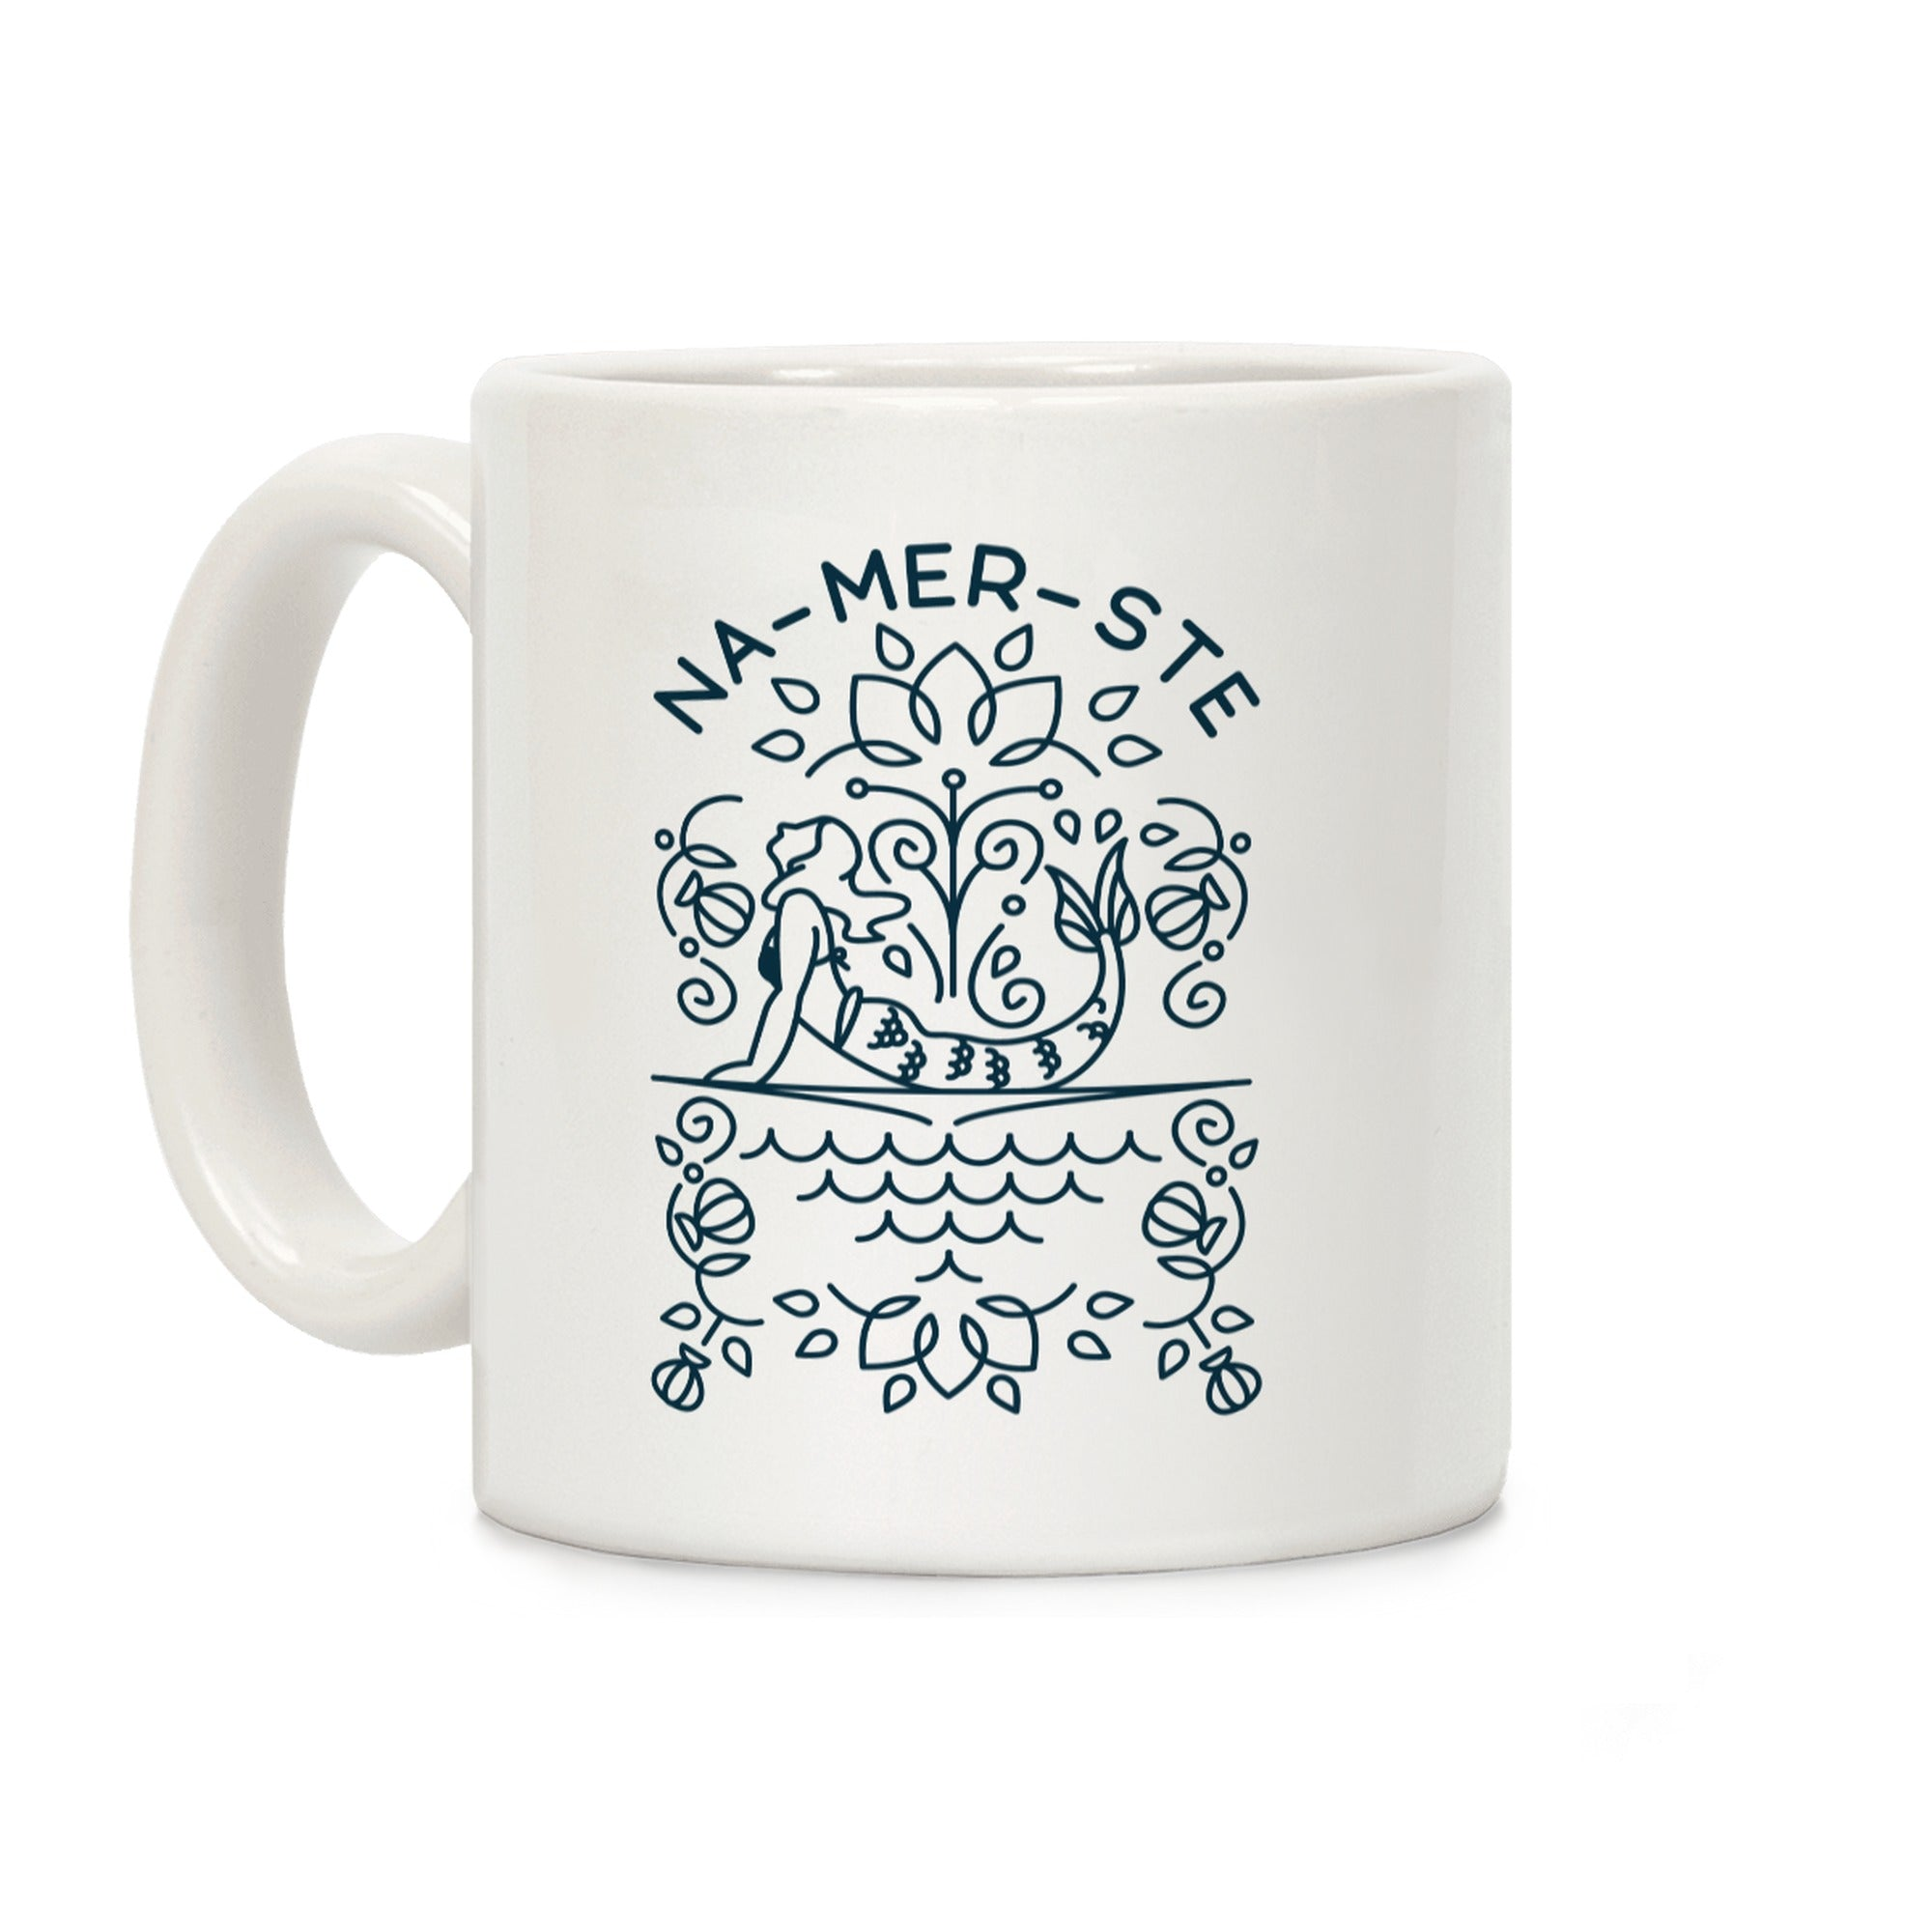 Na-Mer-Ste Mermaid Yoga Ceramic Coffee Mug